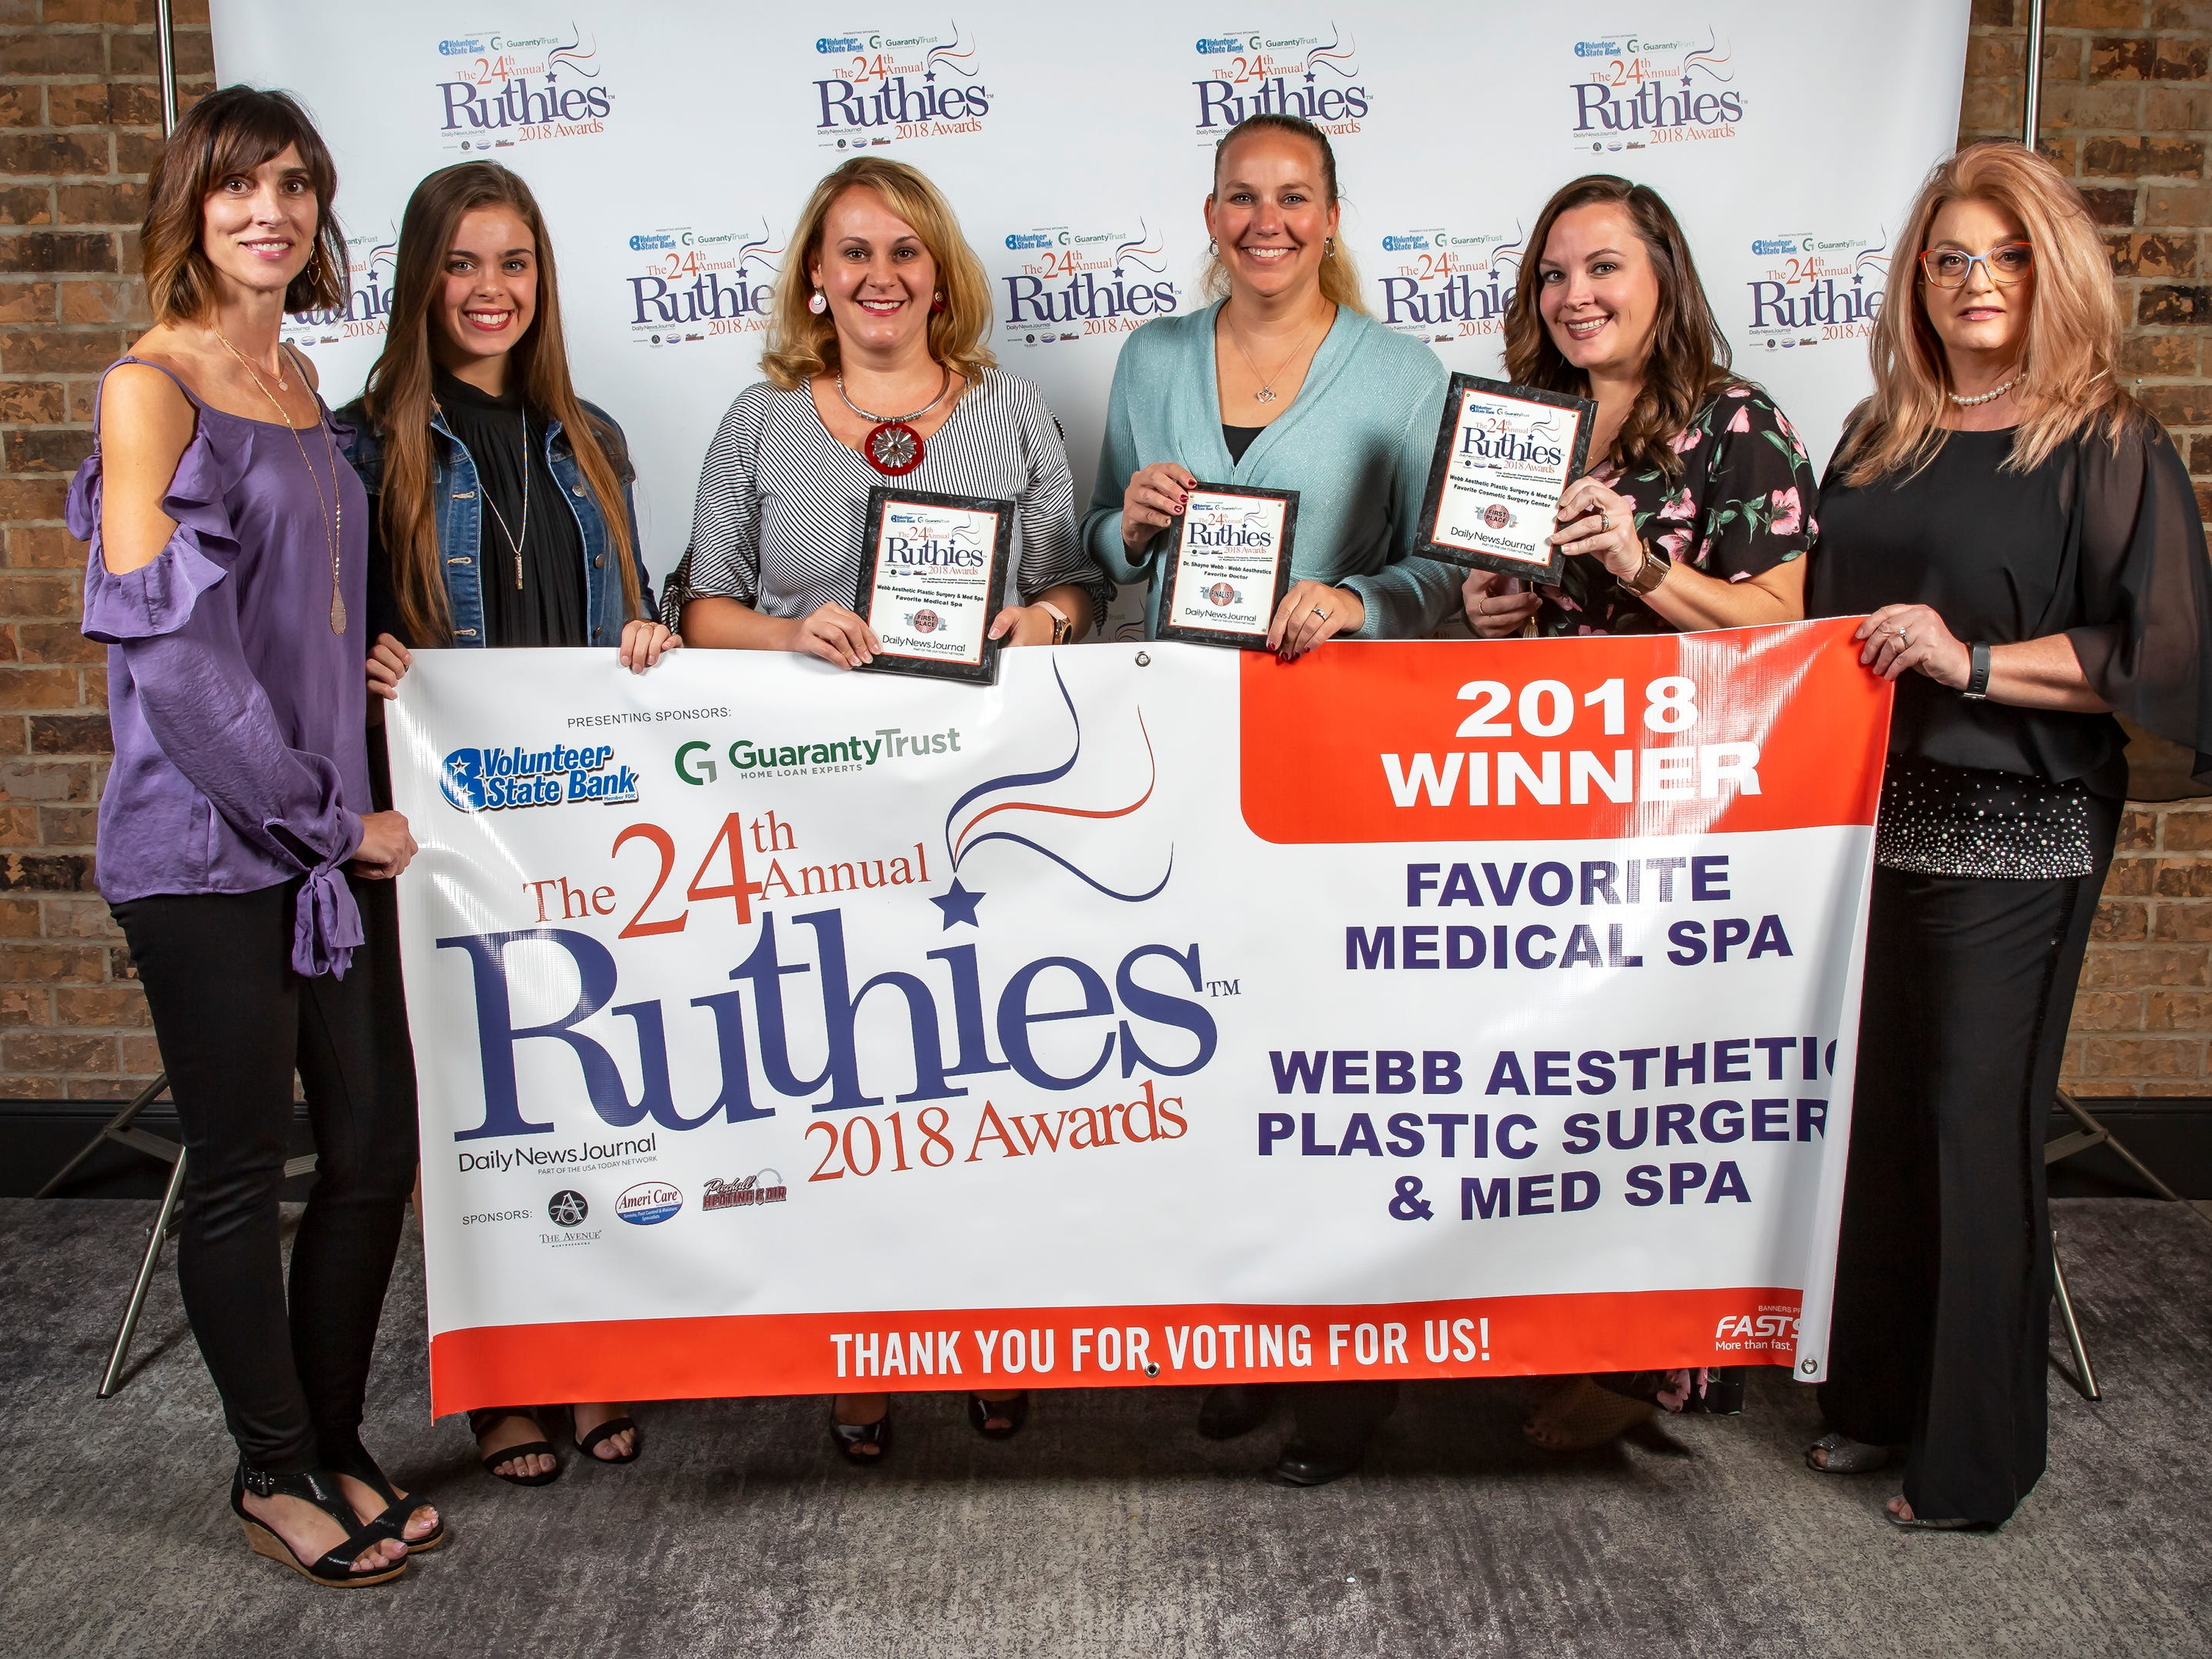 The 24th annual Ruthies Awards were held Tuesday, Oct. 23, 2018 at the DoubleTree Hotel in Murfreesboro